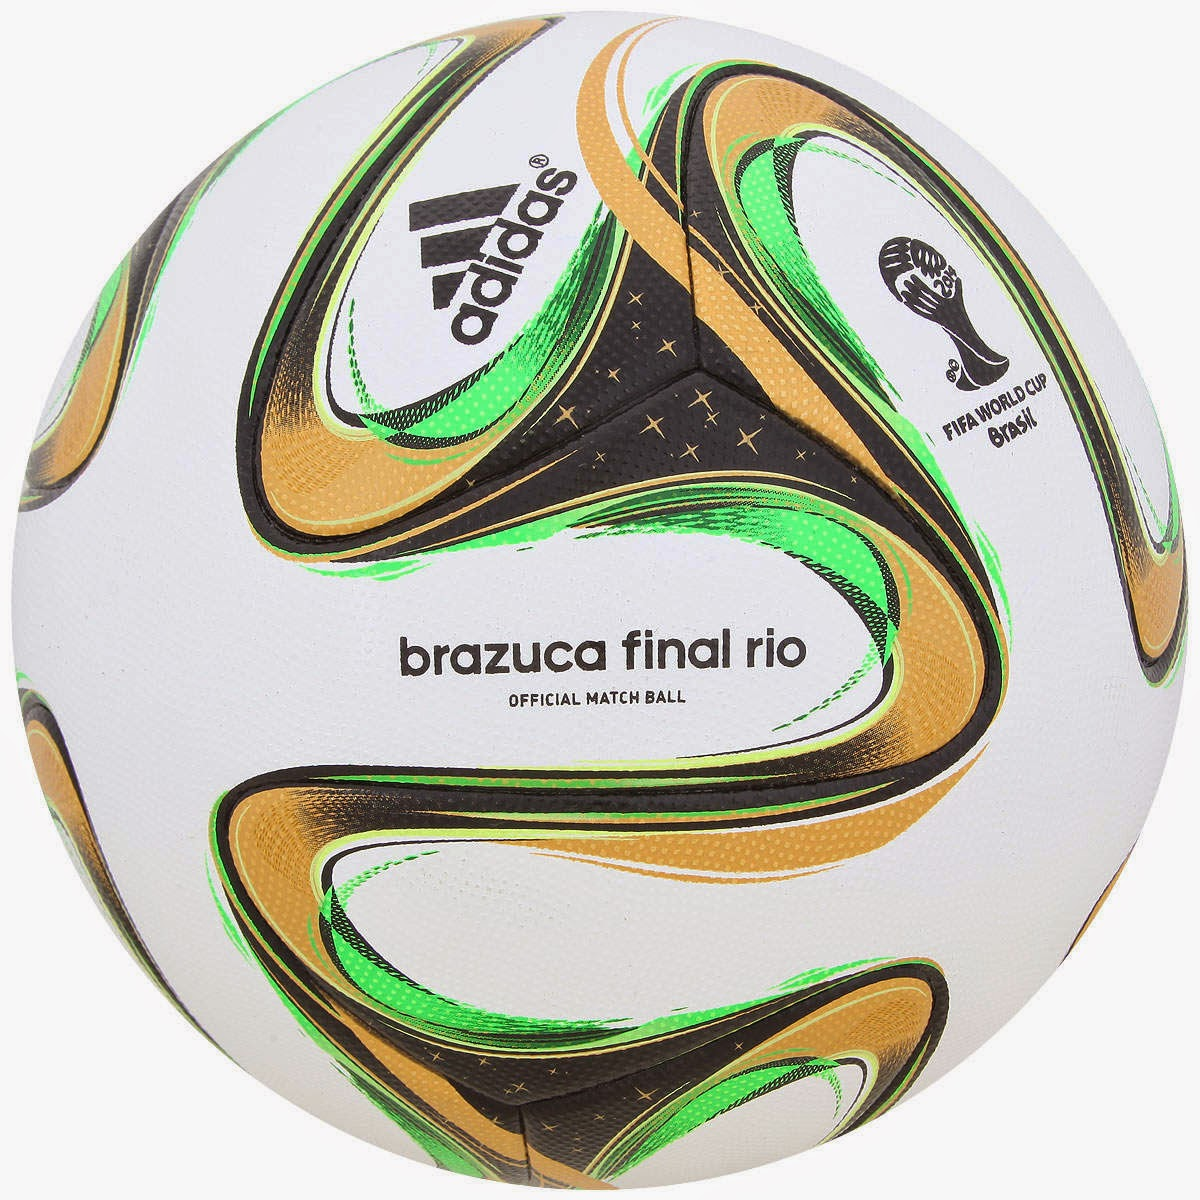 Brazuca Official Match Ball VS Brazuca Top Replique-Qual a diferença  ~  Xandexon 587c06bb2354b